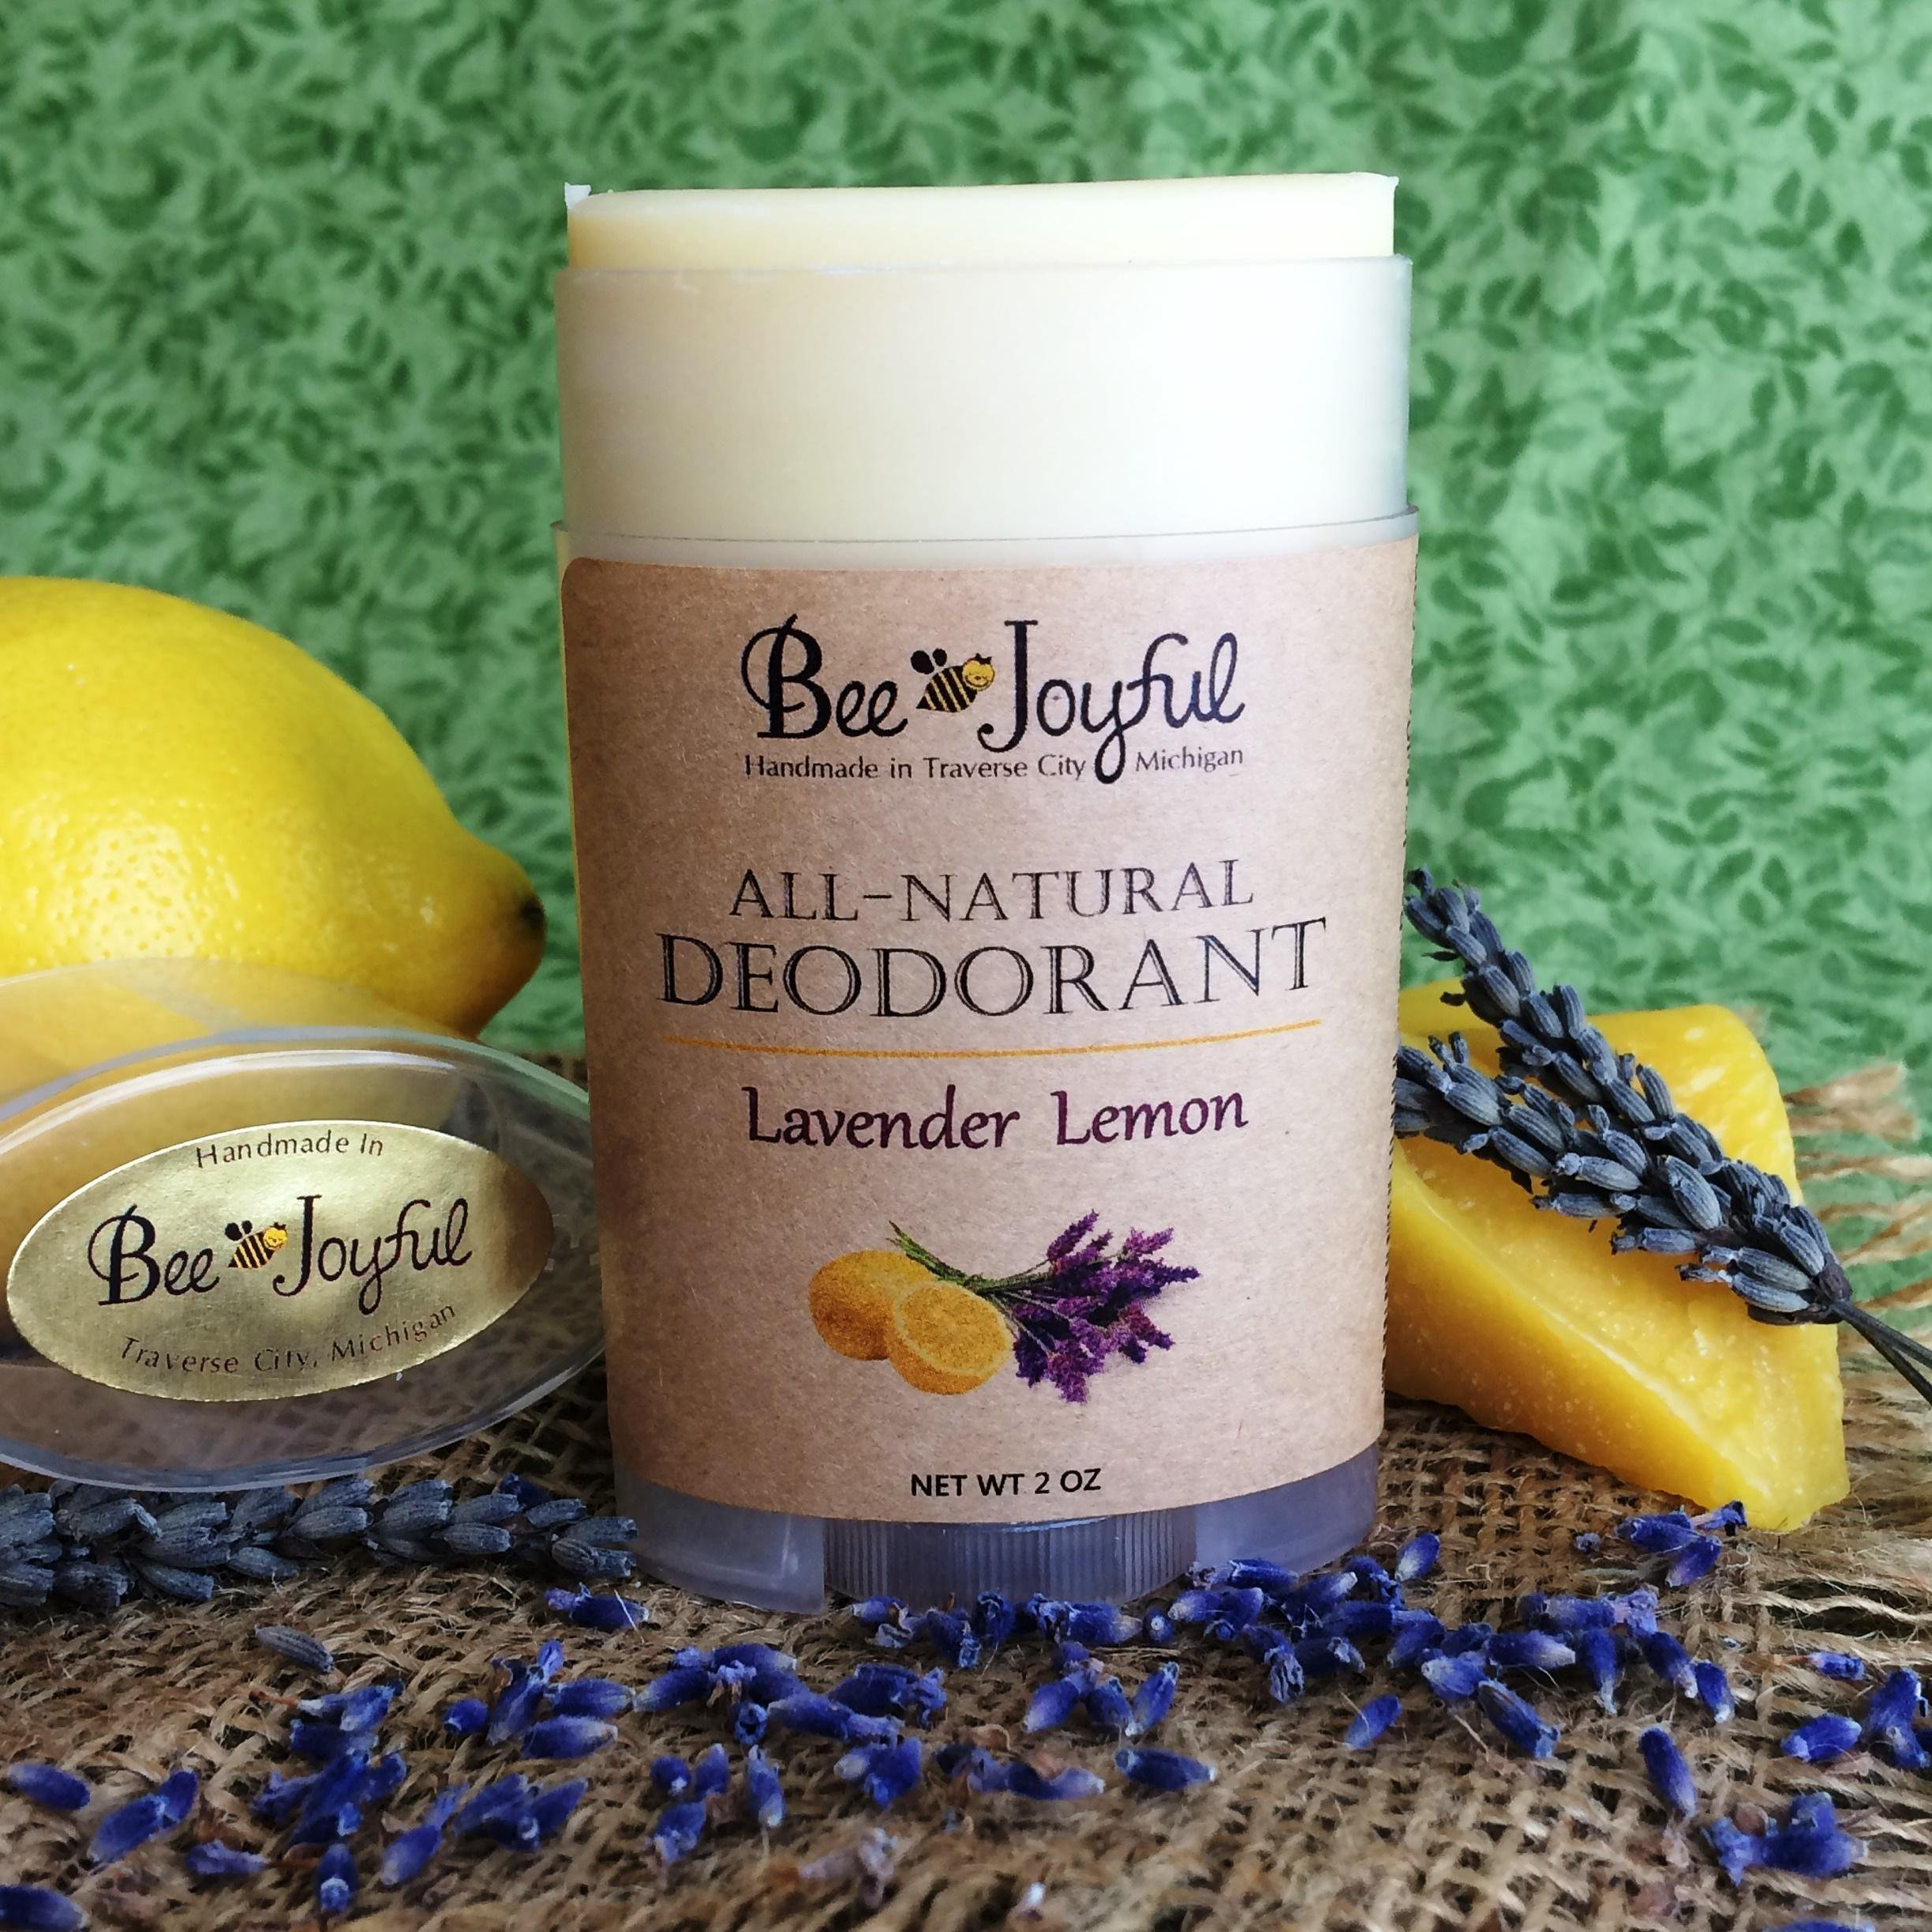 Bee Joyful Deodorant - Lavender Lemon - All-Natural